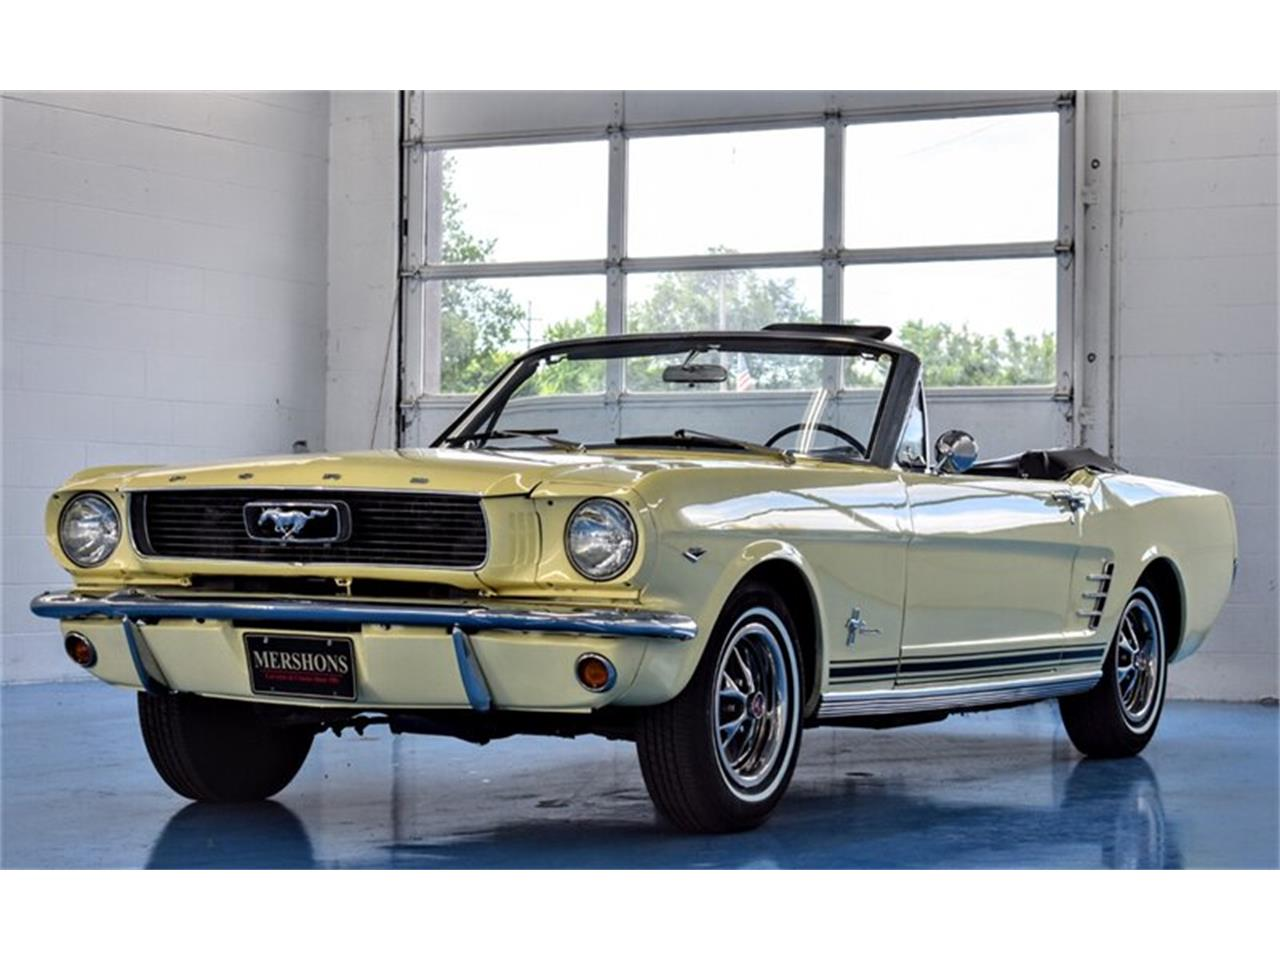 Ford Mustang Expertise disponible v8 289 1966 prix tout compris 1966